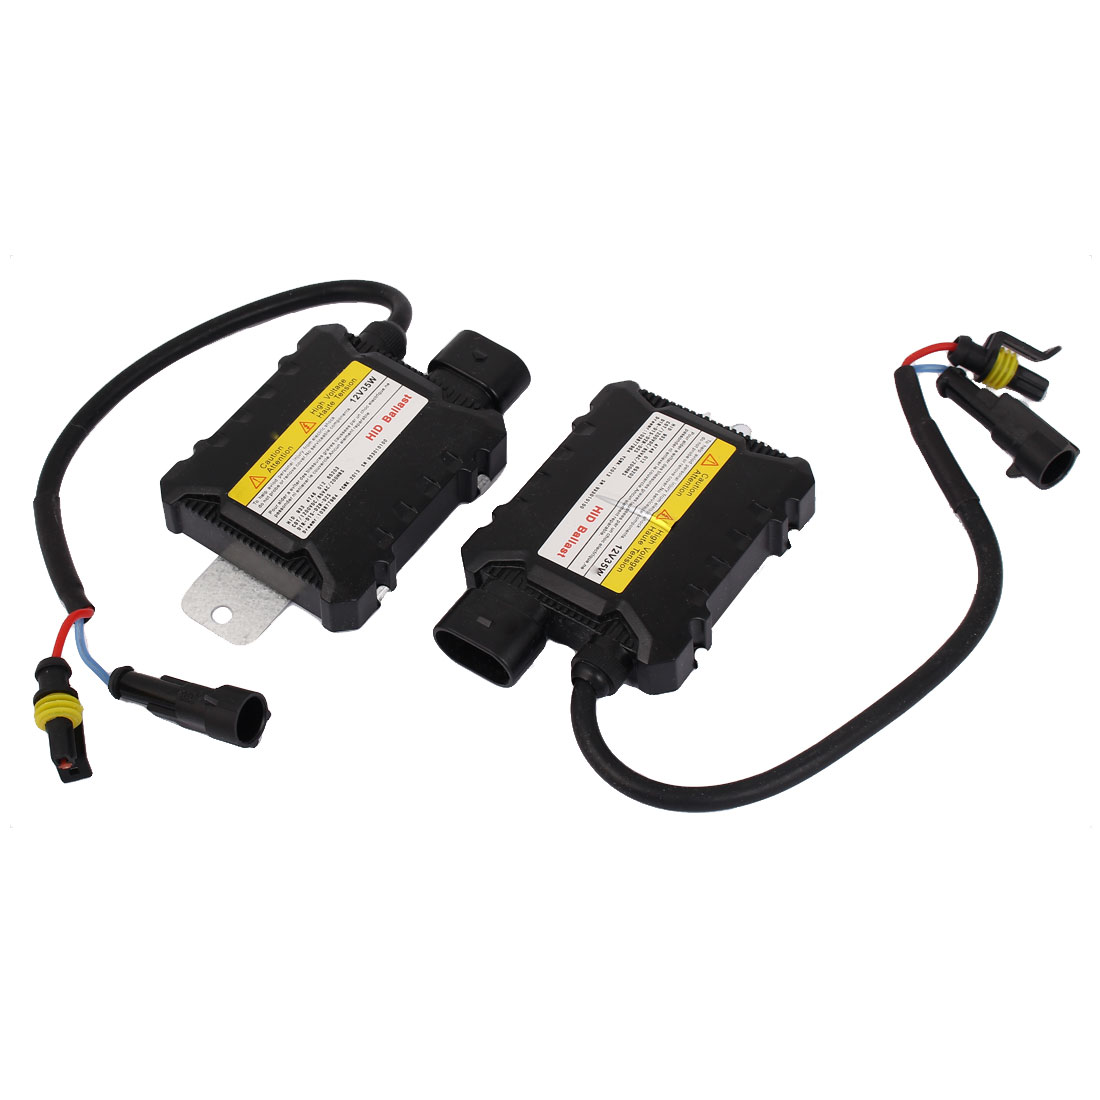 2pcs Vehicle Car HID Xenon Mini Ballast 35W for H1 H3 H7 H8 H9 H10 H11